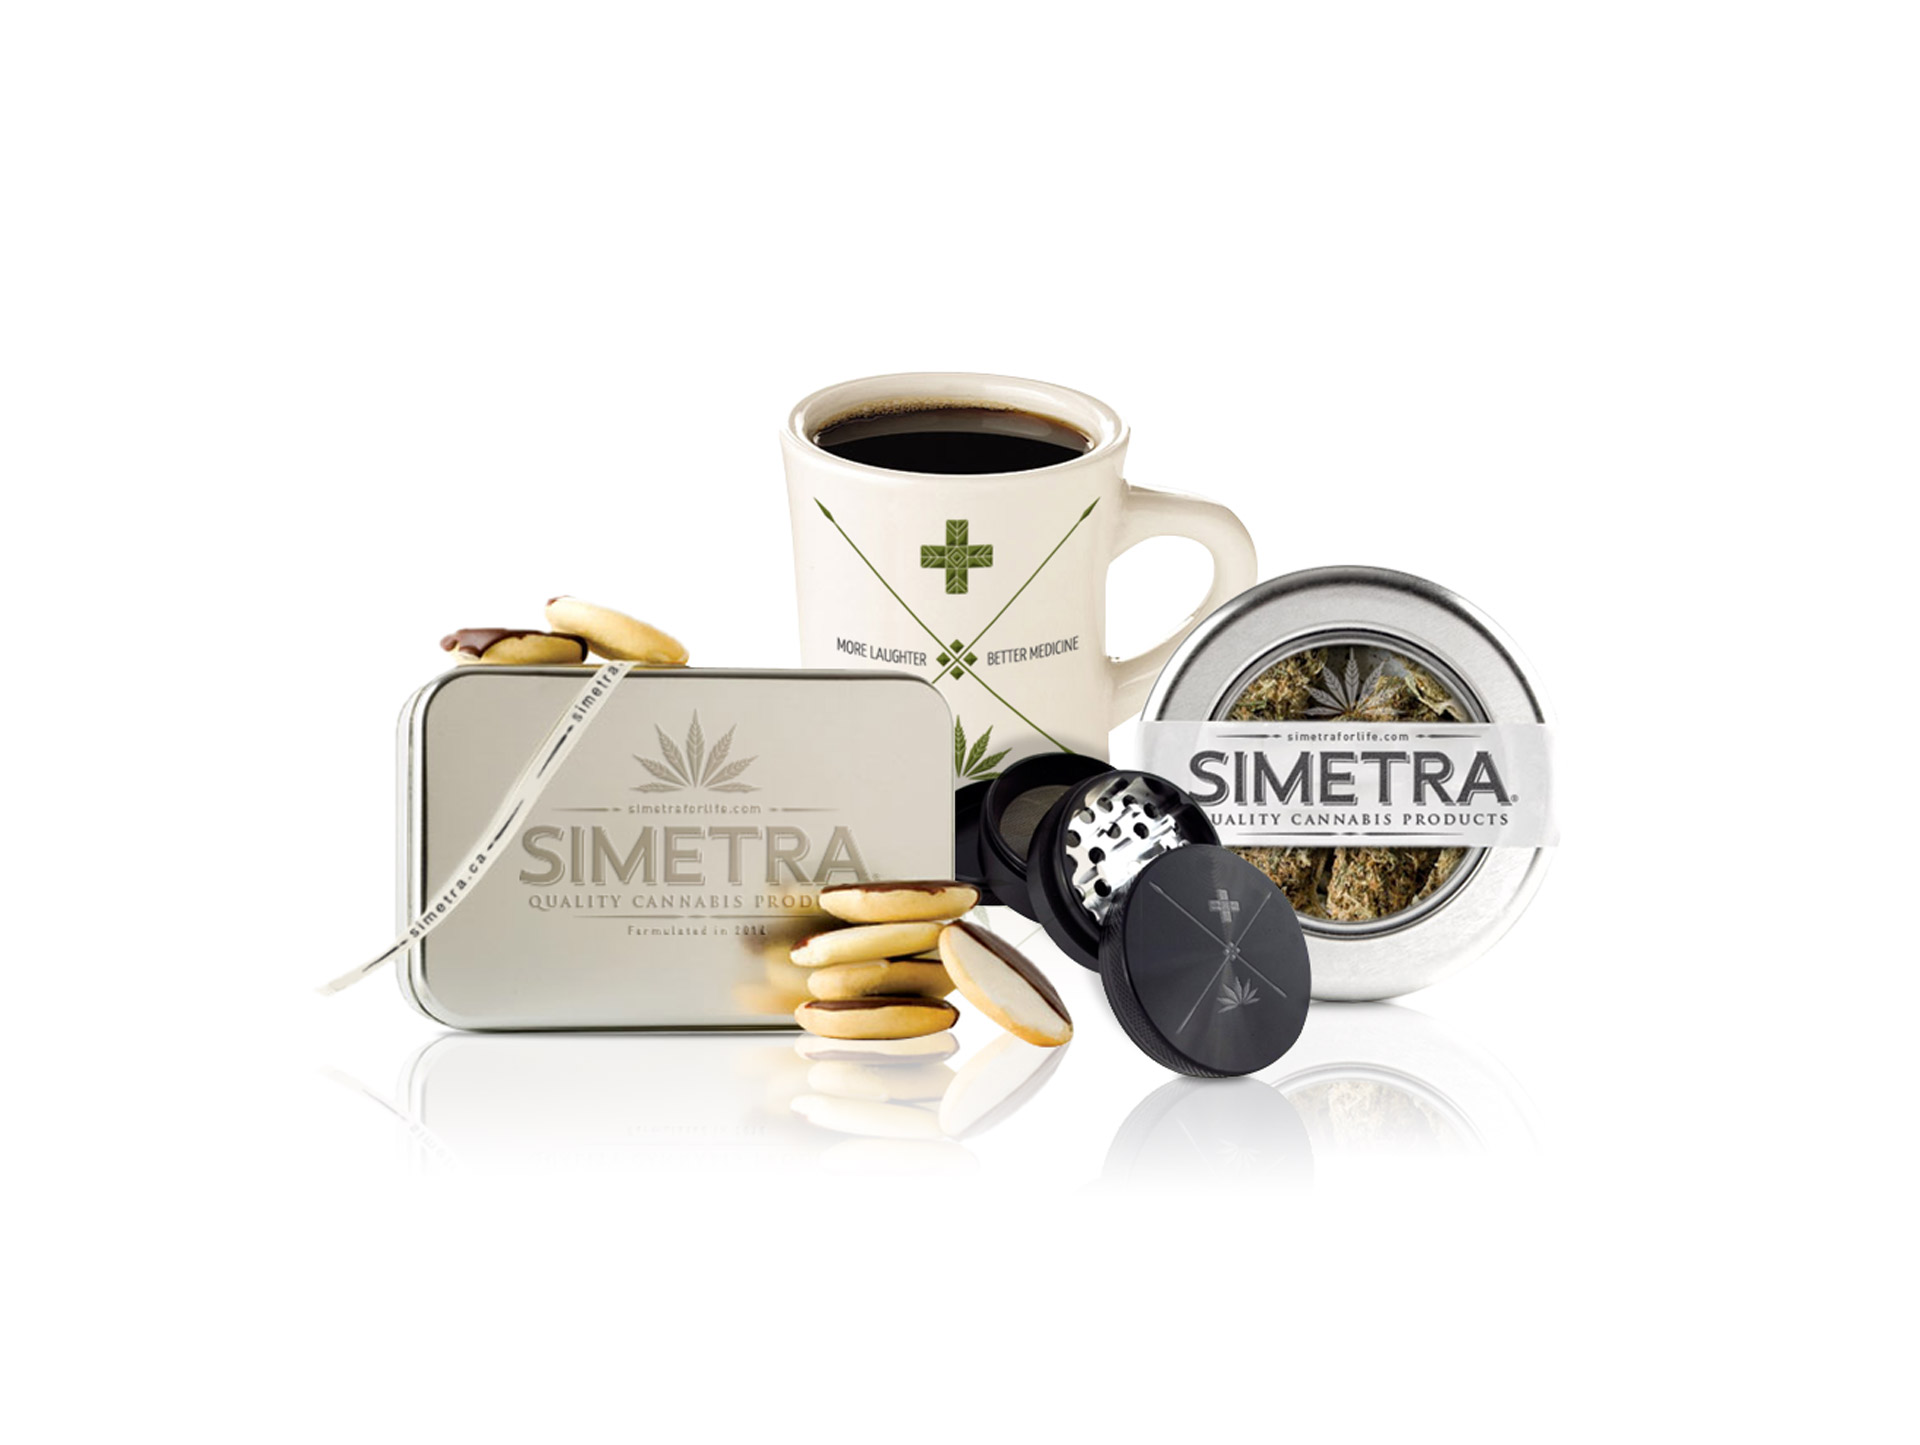 simetra-cannabis-all-products